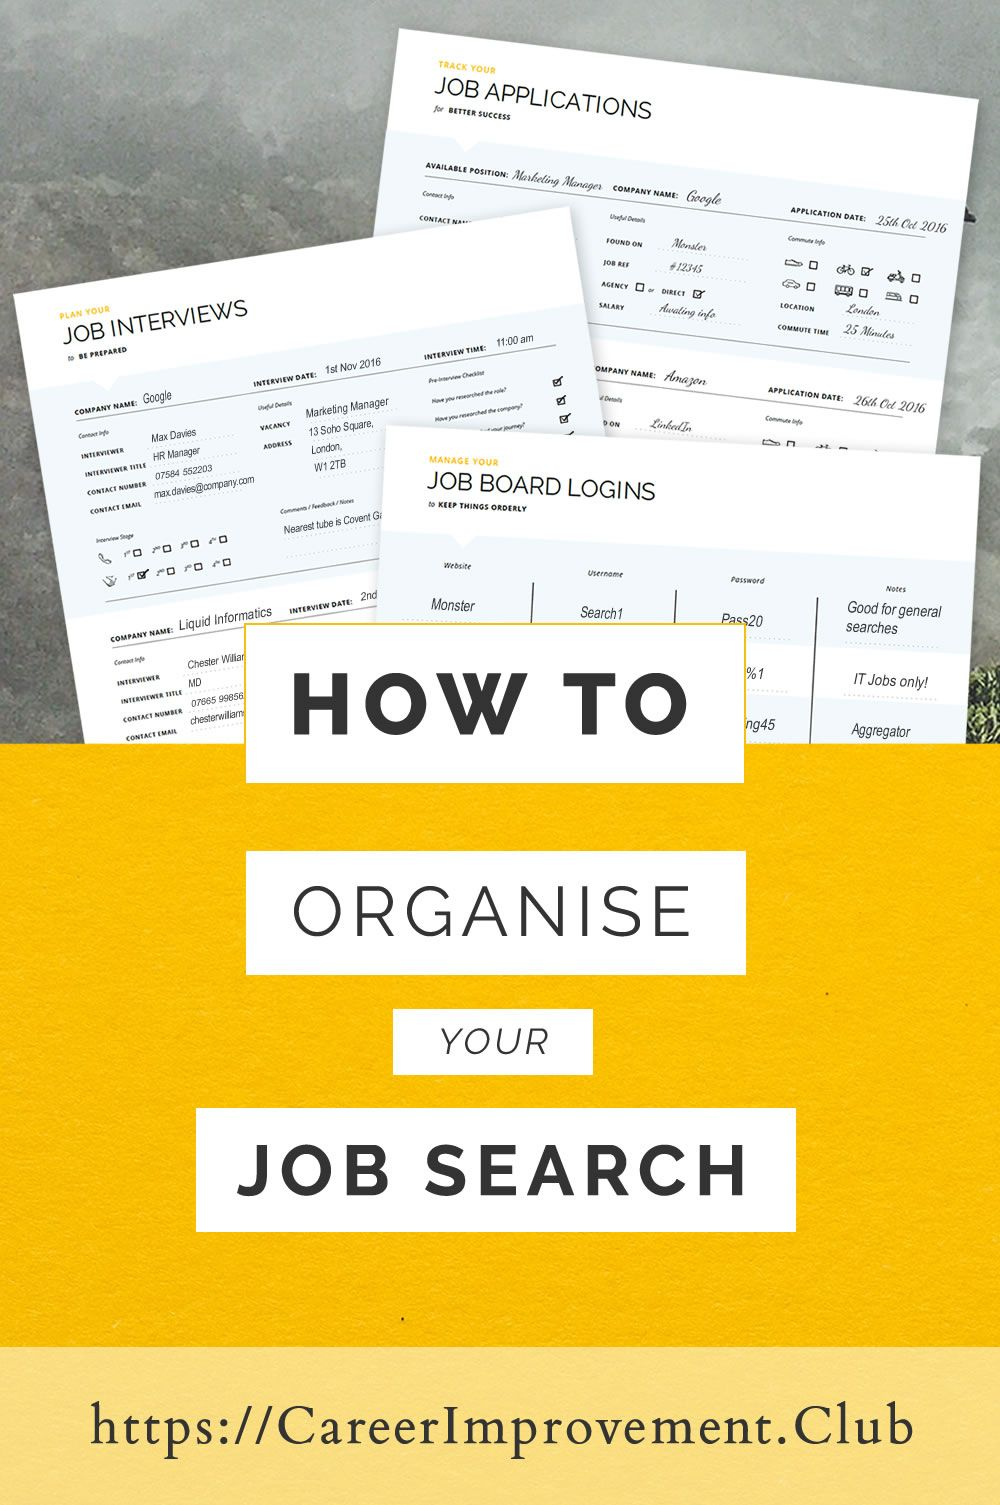 Job Search Planner Job Search Organiser 3 Printable Planners Letter A4 A5 Instant Download Bonus Excel Spreadsheets Included The Career Improvemen Job Search Motivation Job Search Tips Job Search